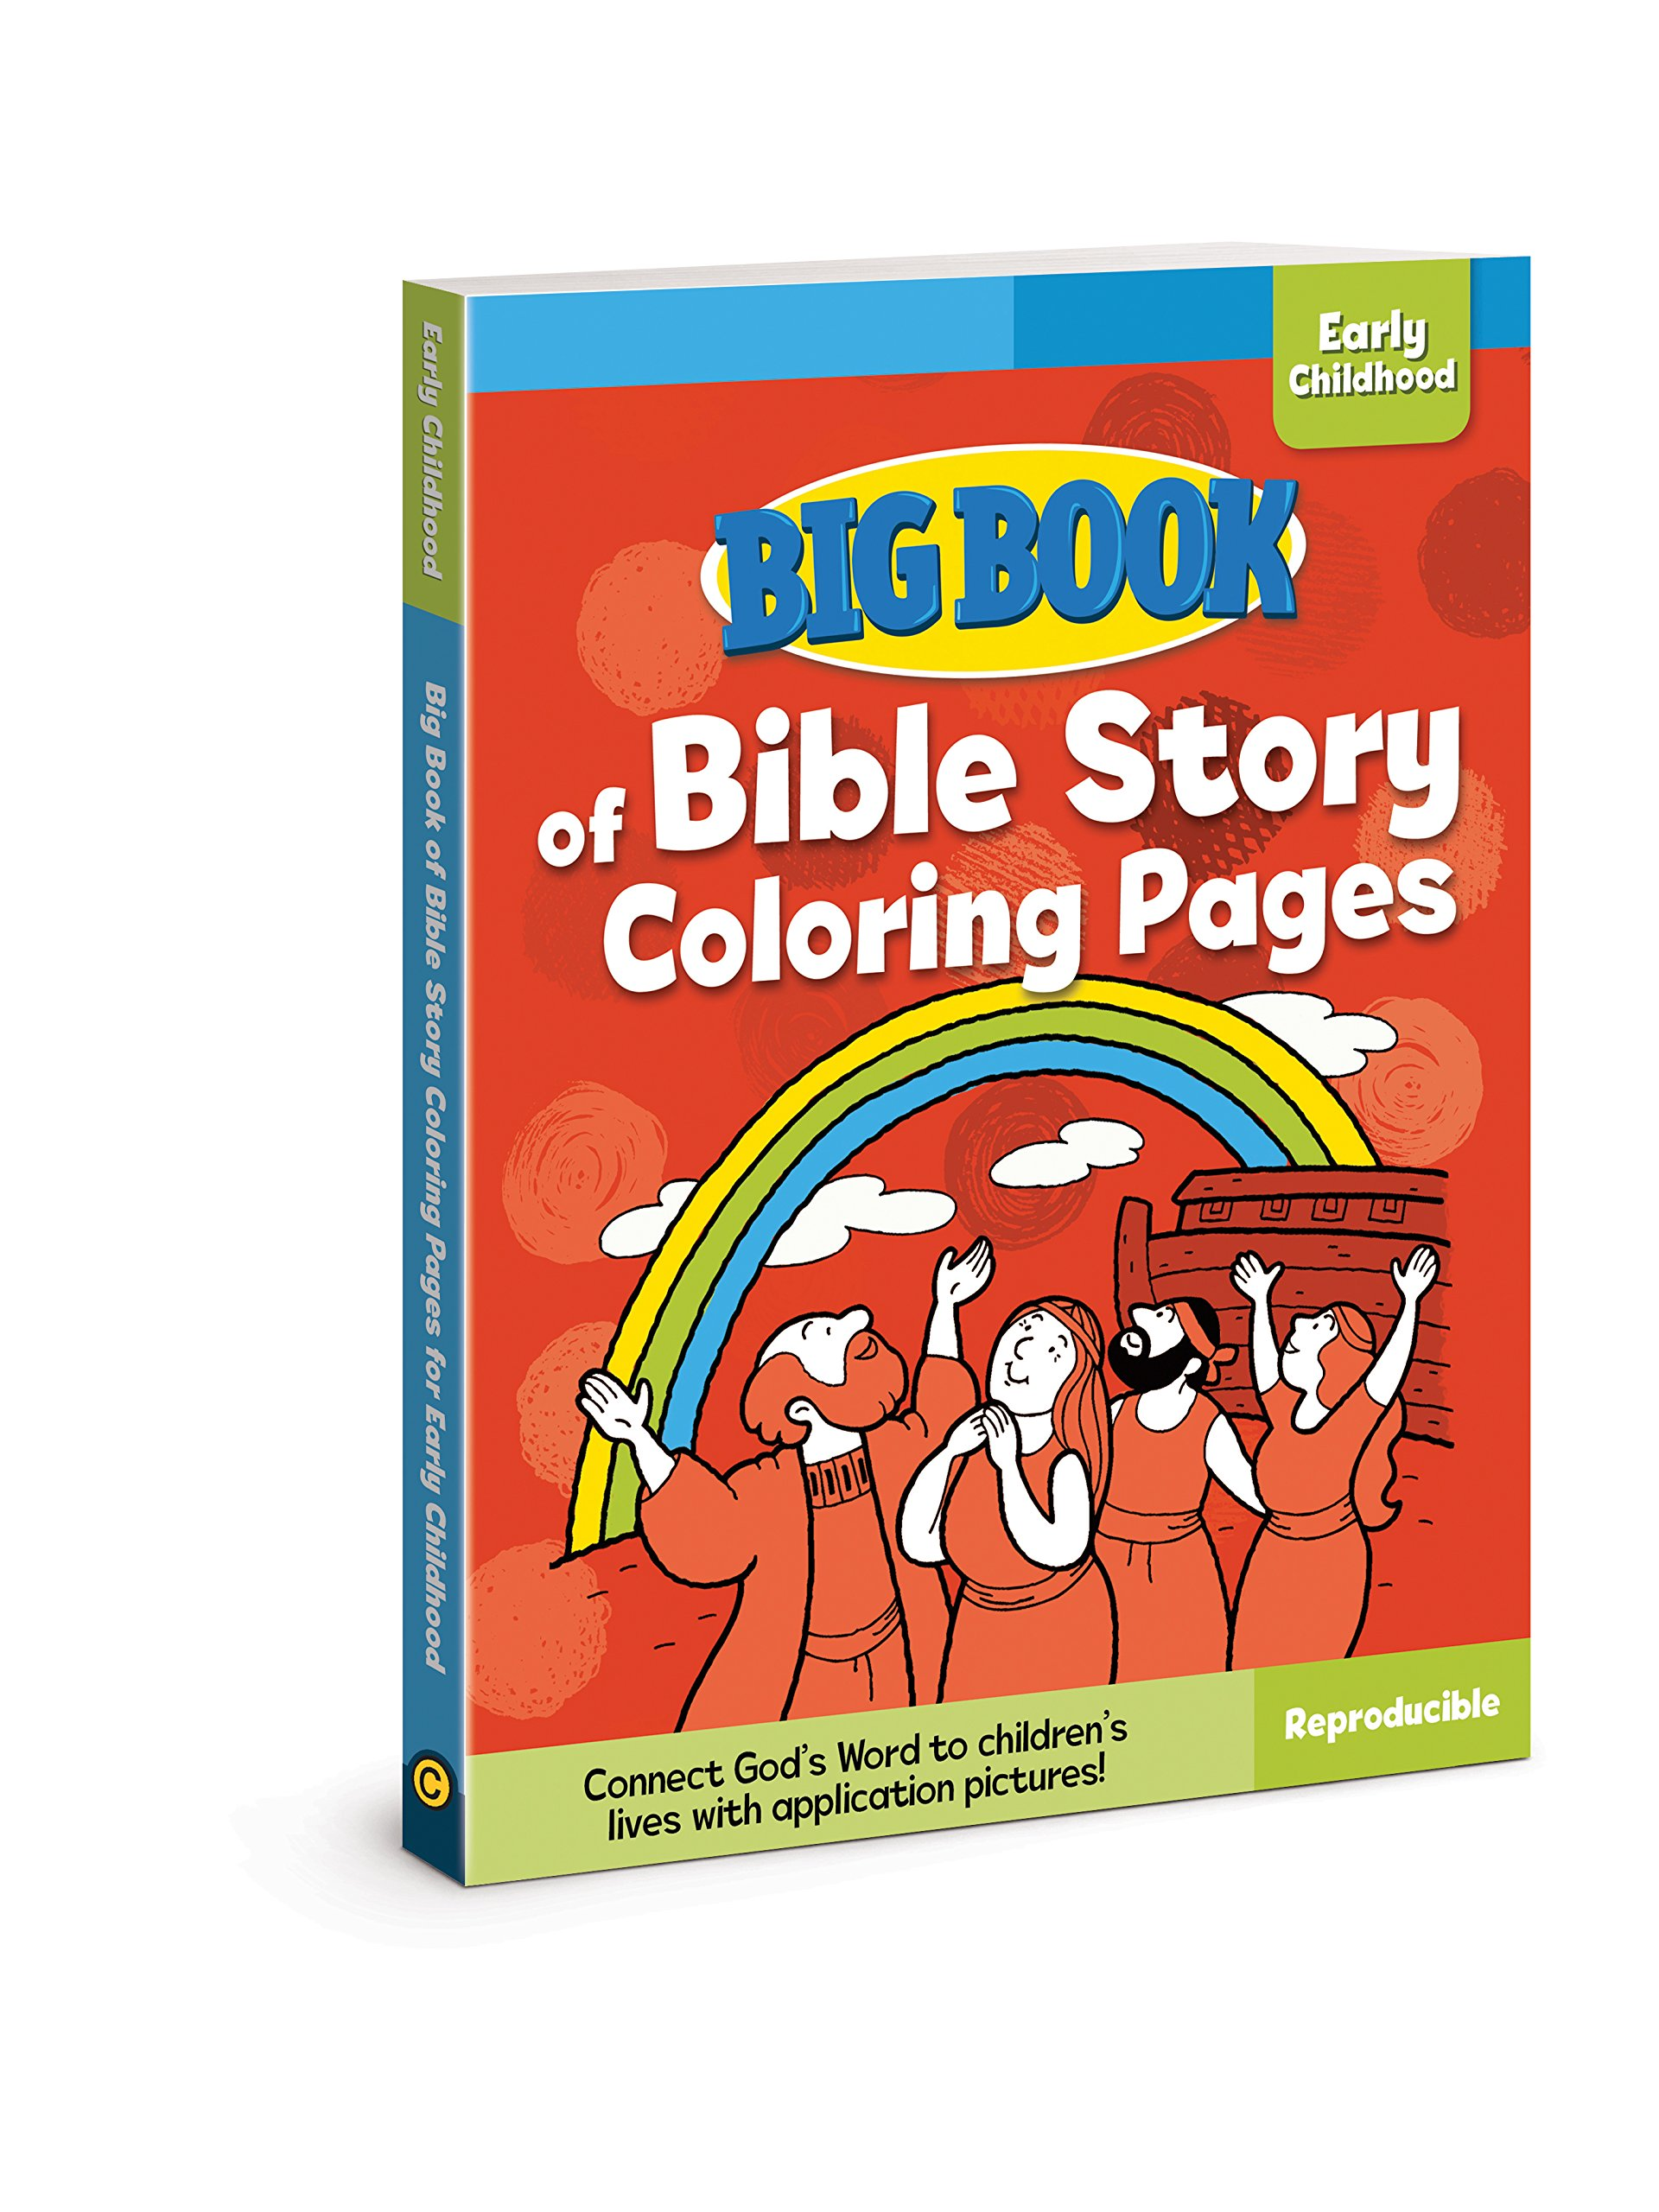 Big Book Of Bible Story Coloring Pages For Early Childhood Books David C Cook 9780830772322 Amazon